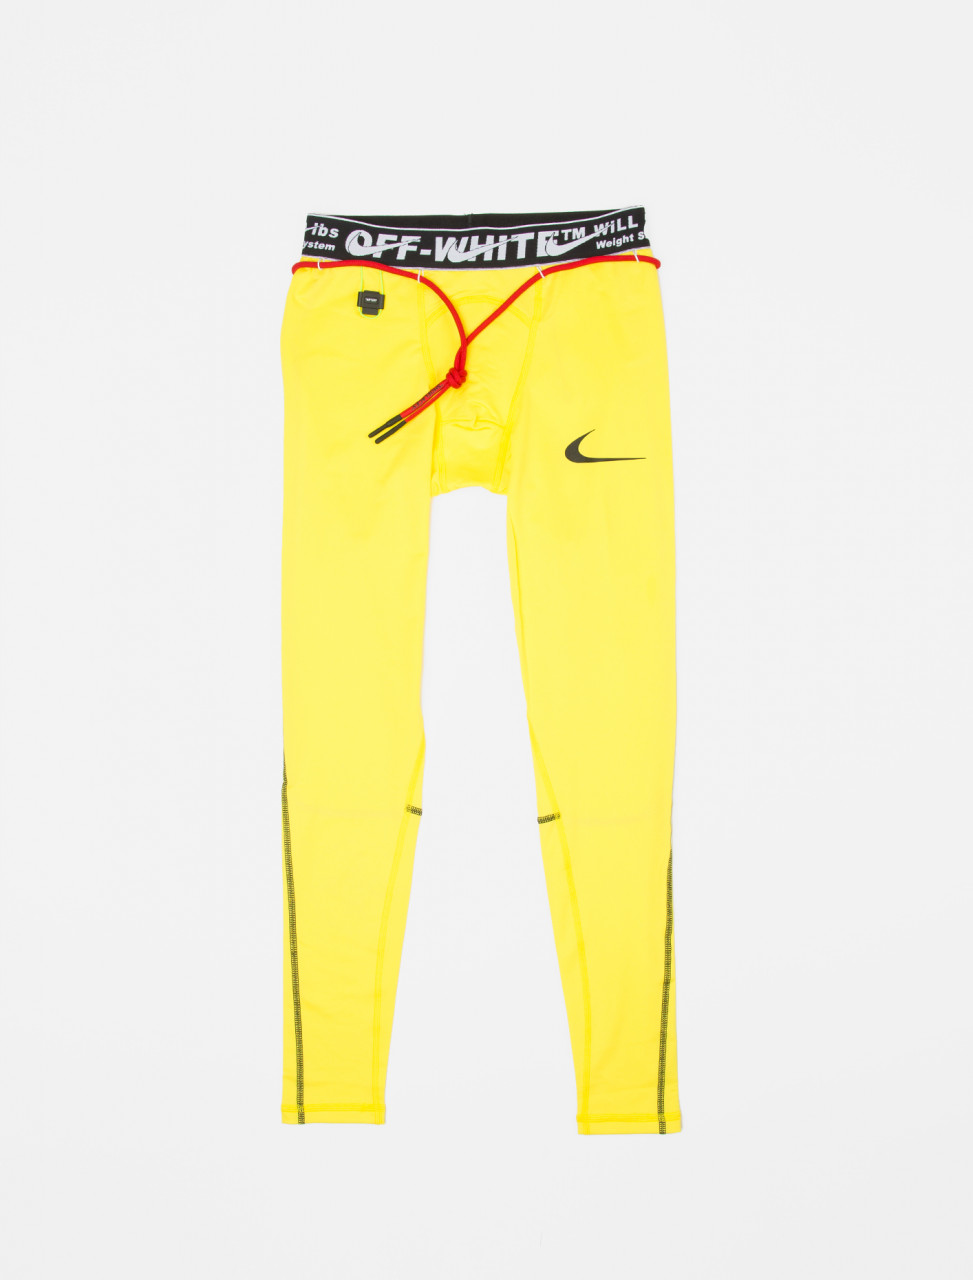 x Off-White Pro Tights in Optic Yellow